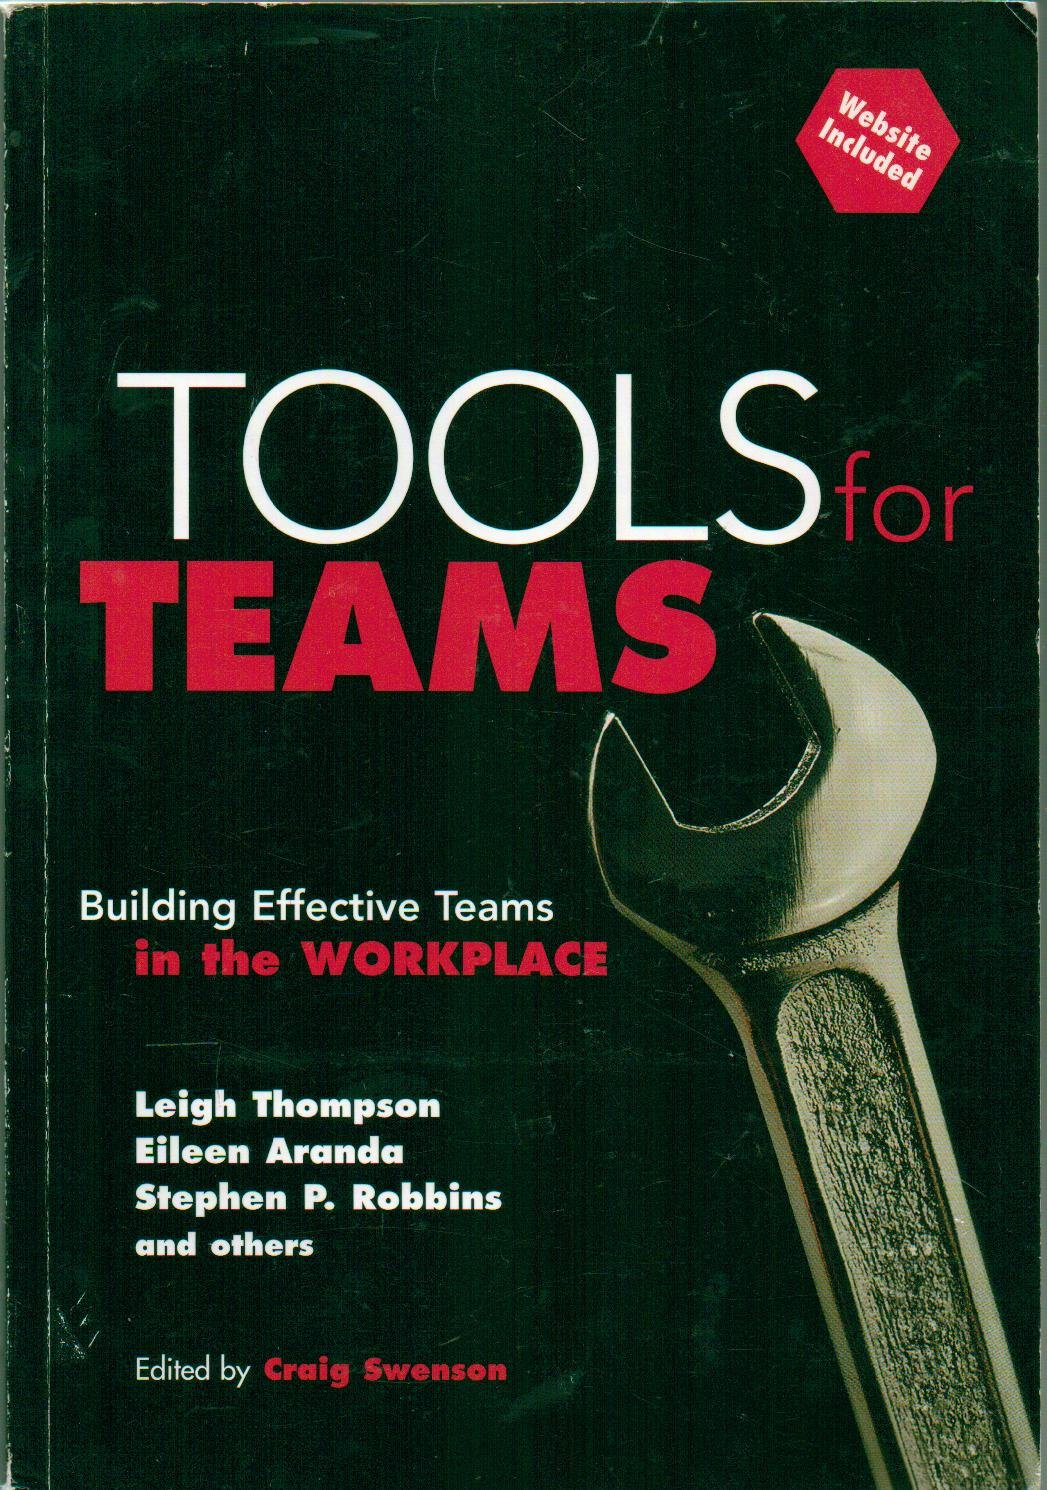 Tools for Teams, Building Effective Teams in the Workplace, With CD, Website Include - First Edition, 7th Printing 2001 PDF